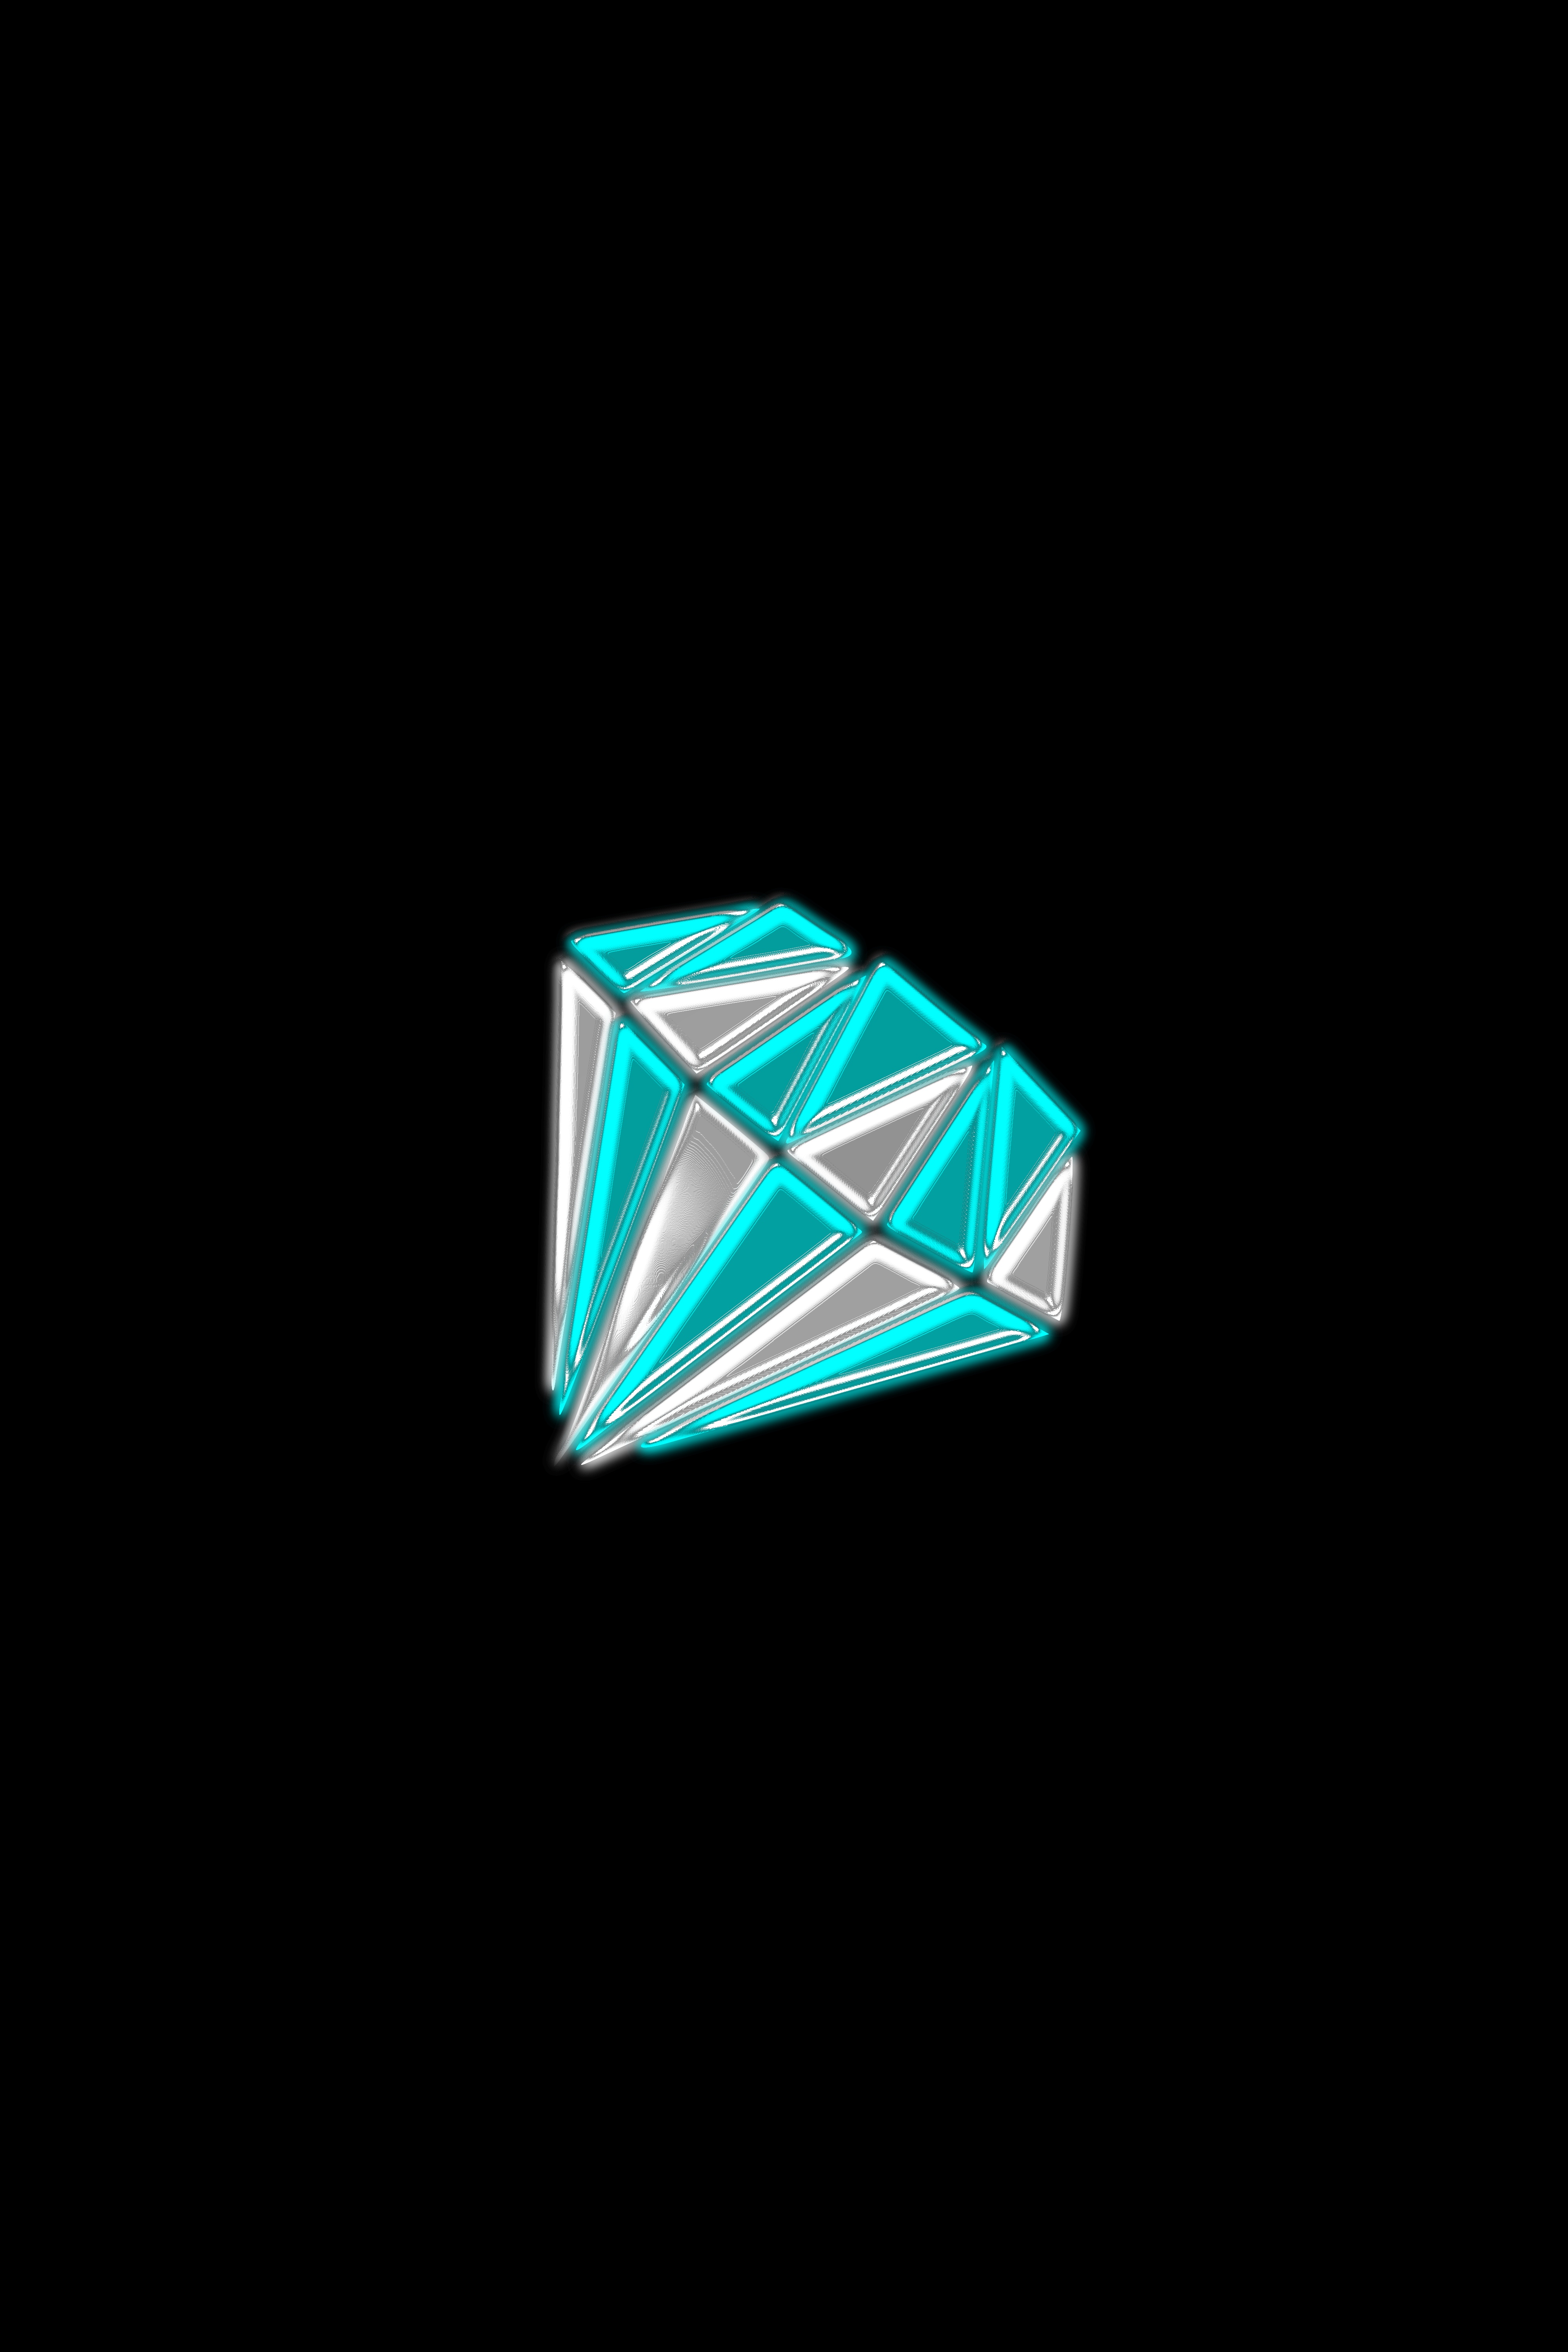 112024 download wallpaper Minimalism, Diamond, Triangles, Form, Shine, Brilliance screensavers and pictures for free